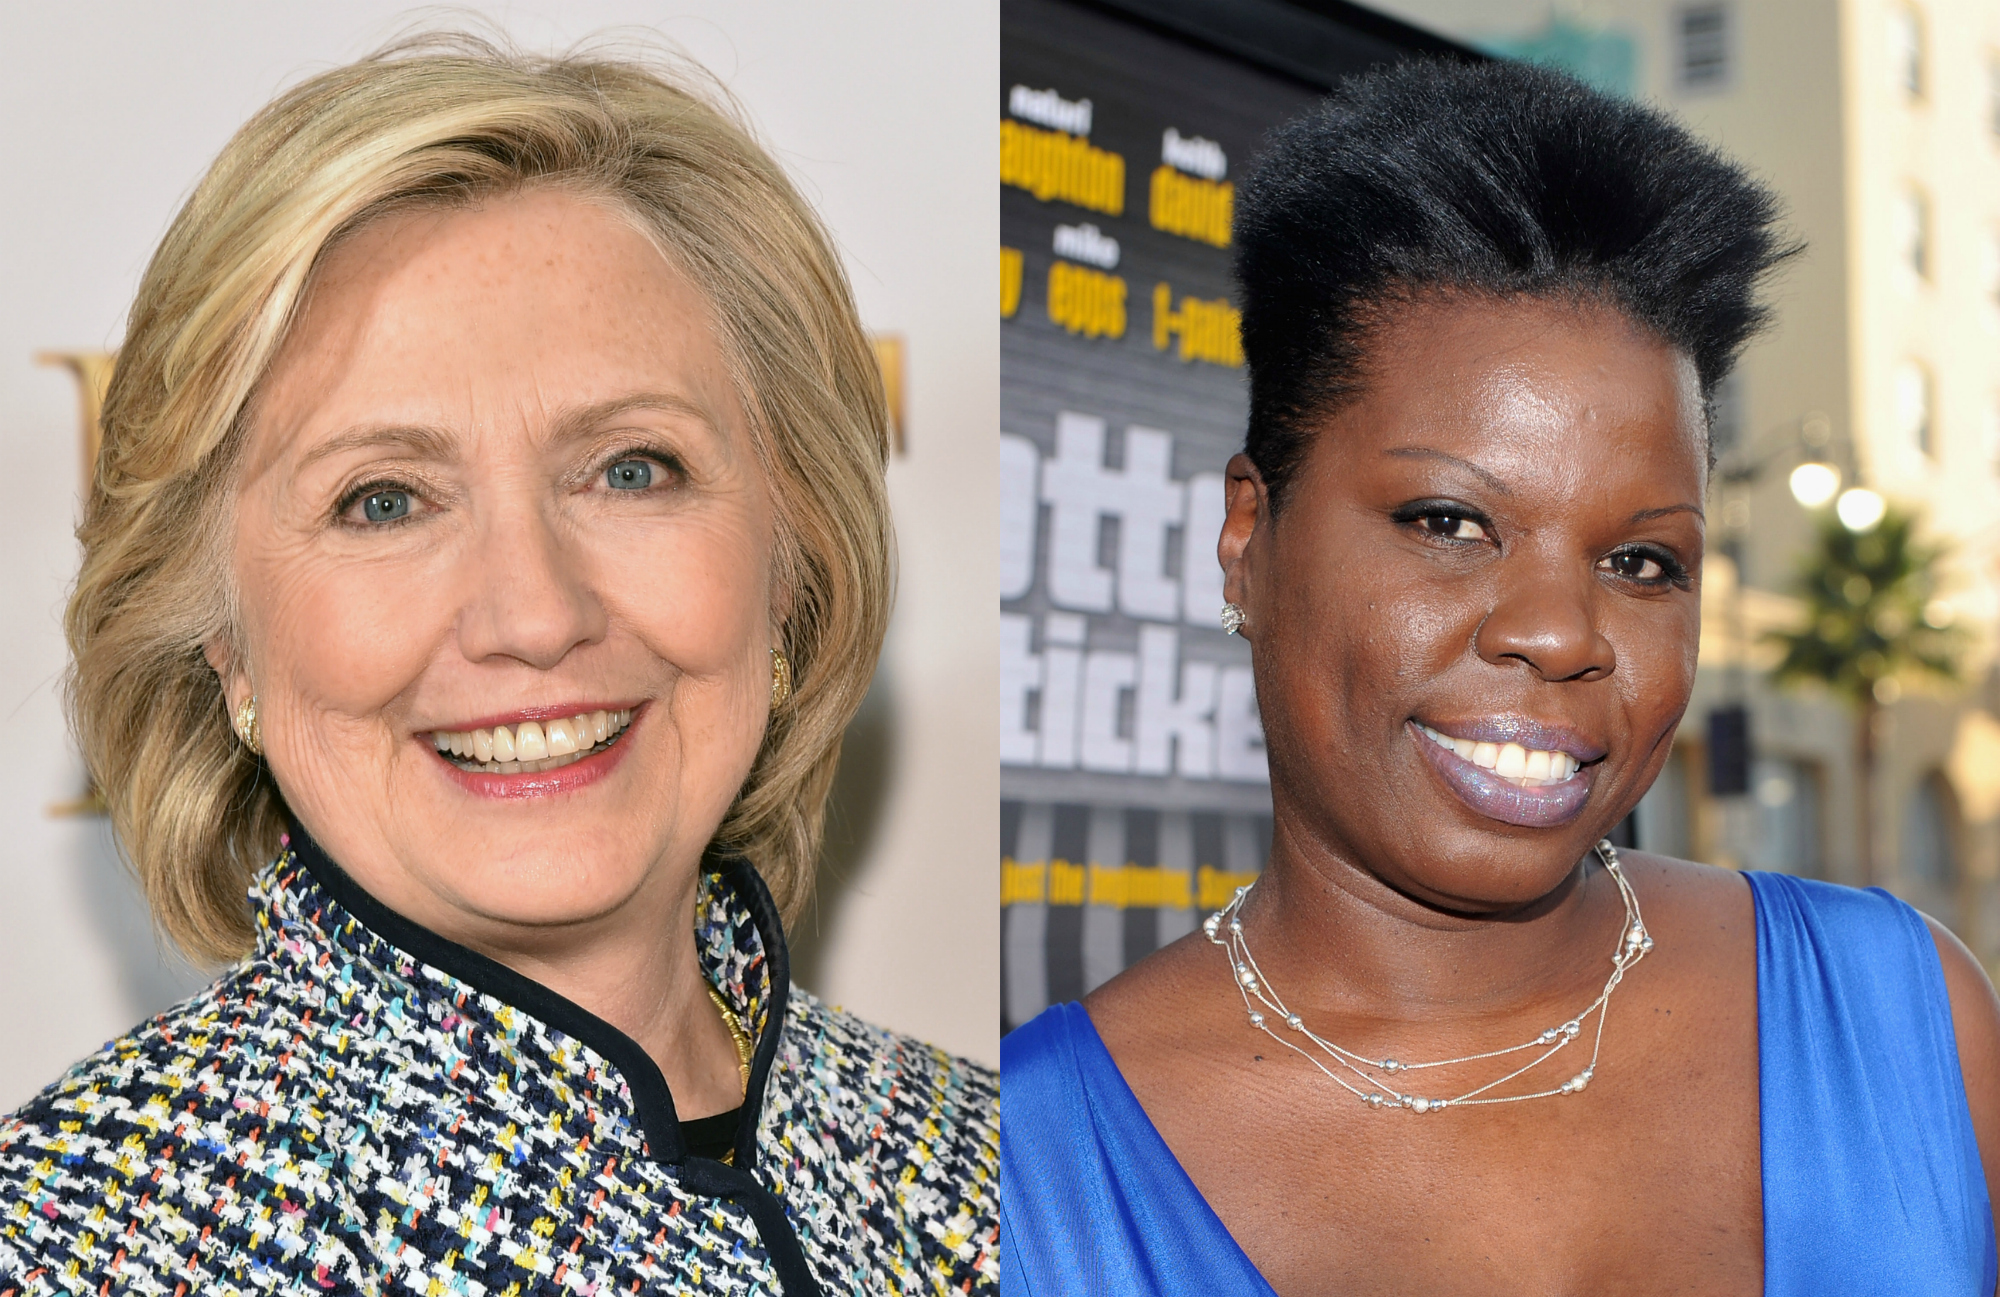 Hillary Clinton tweeted her support for Leslie Jones, because they're both queens and also #GirlPower